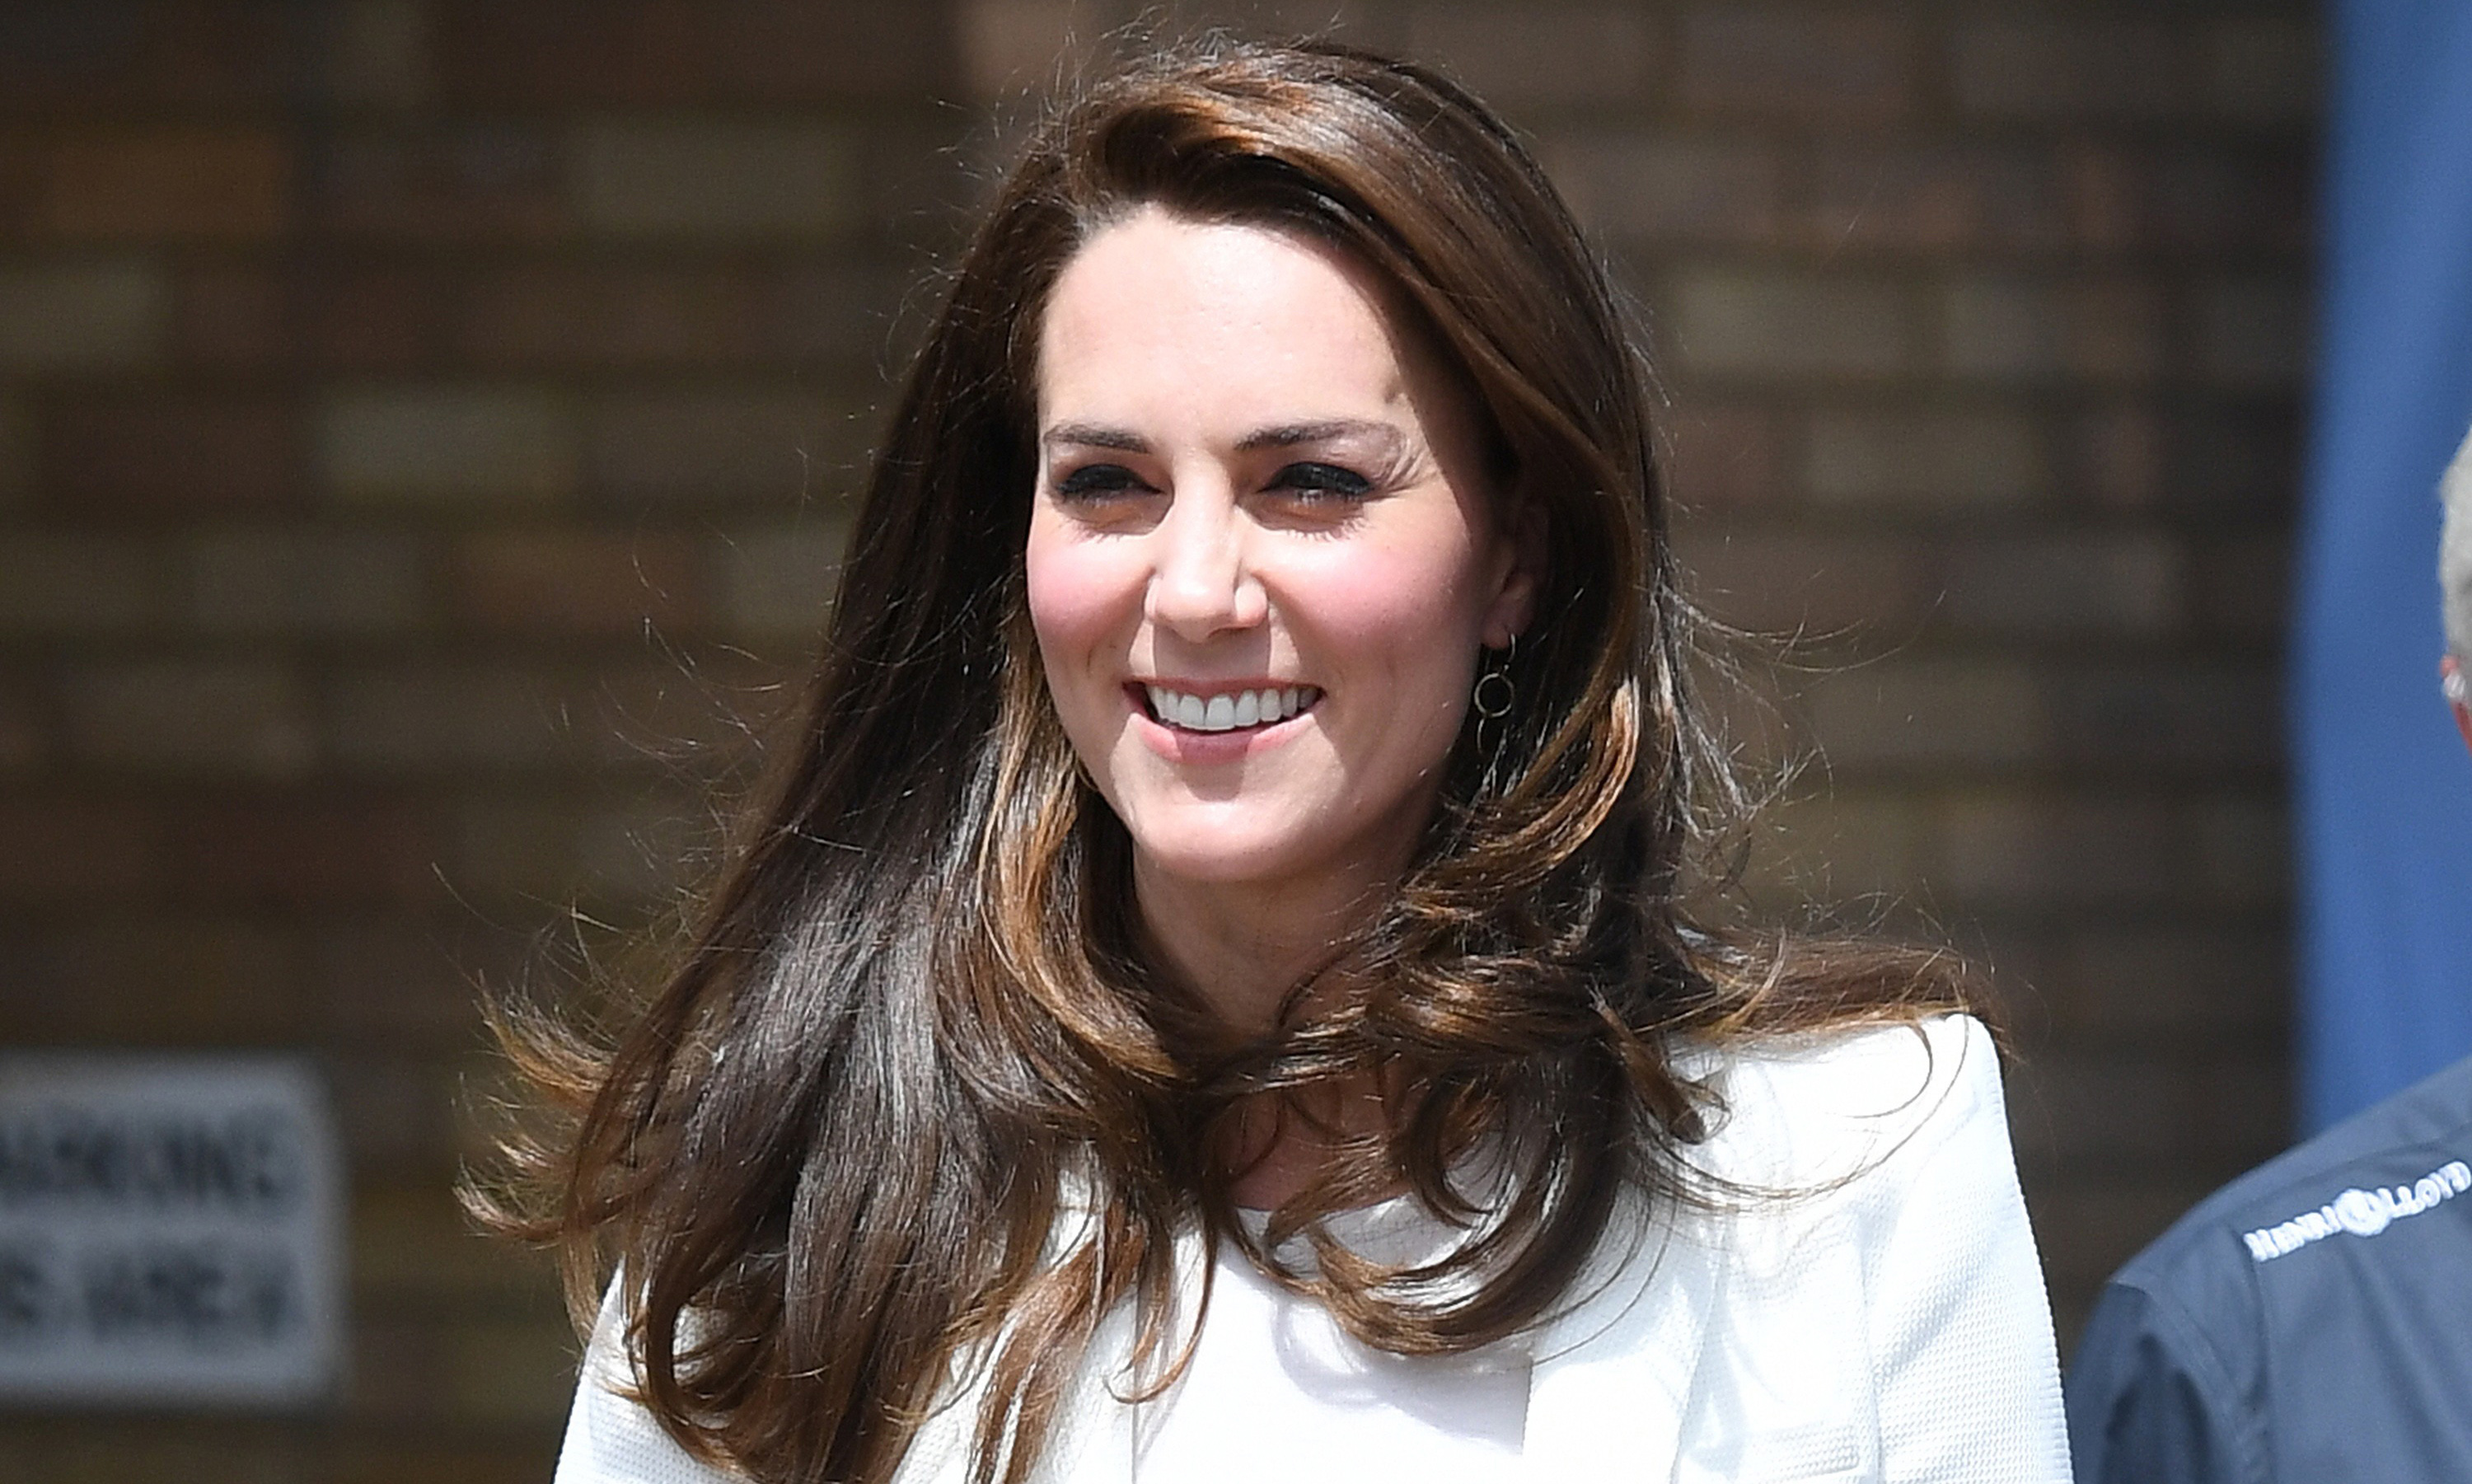 Why Kate Middleton did not wear her engagement ring during hospital visit